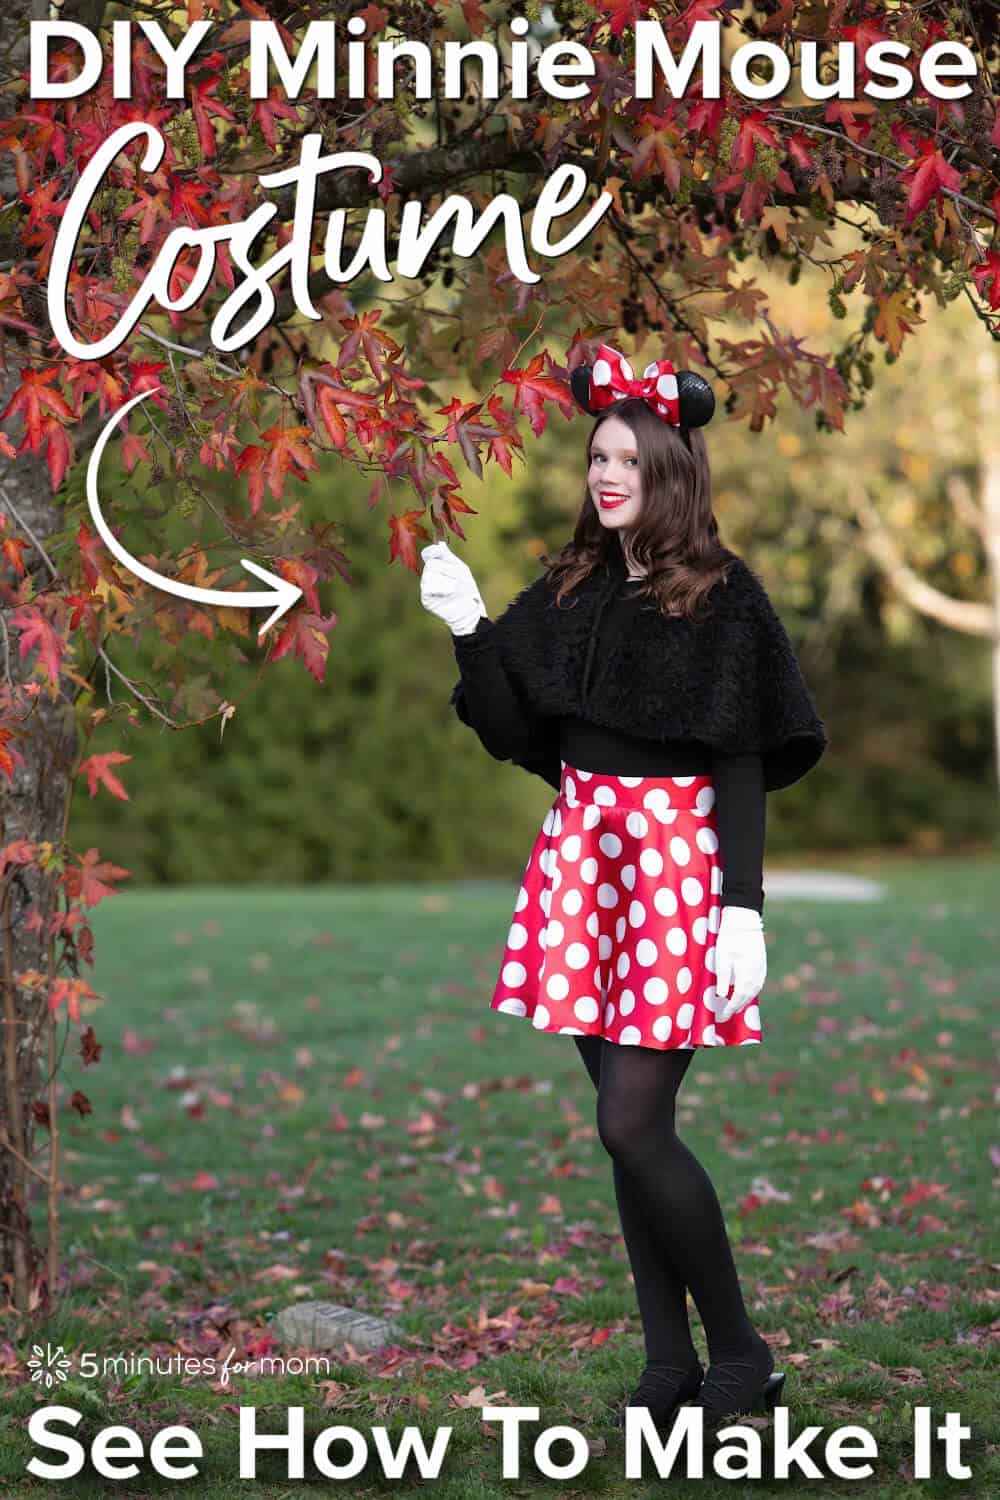 """Teenage girl dressed in DIY Minnie Mouse Costume. Text on image says """"DIY Minnie Mouse Costume - See How To Make It"""""""